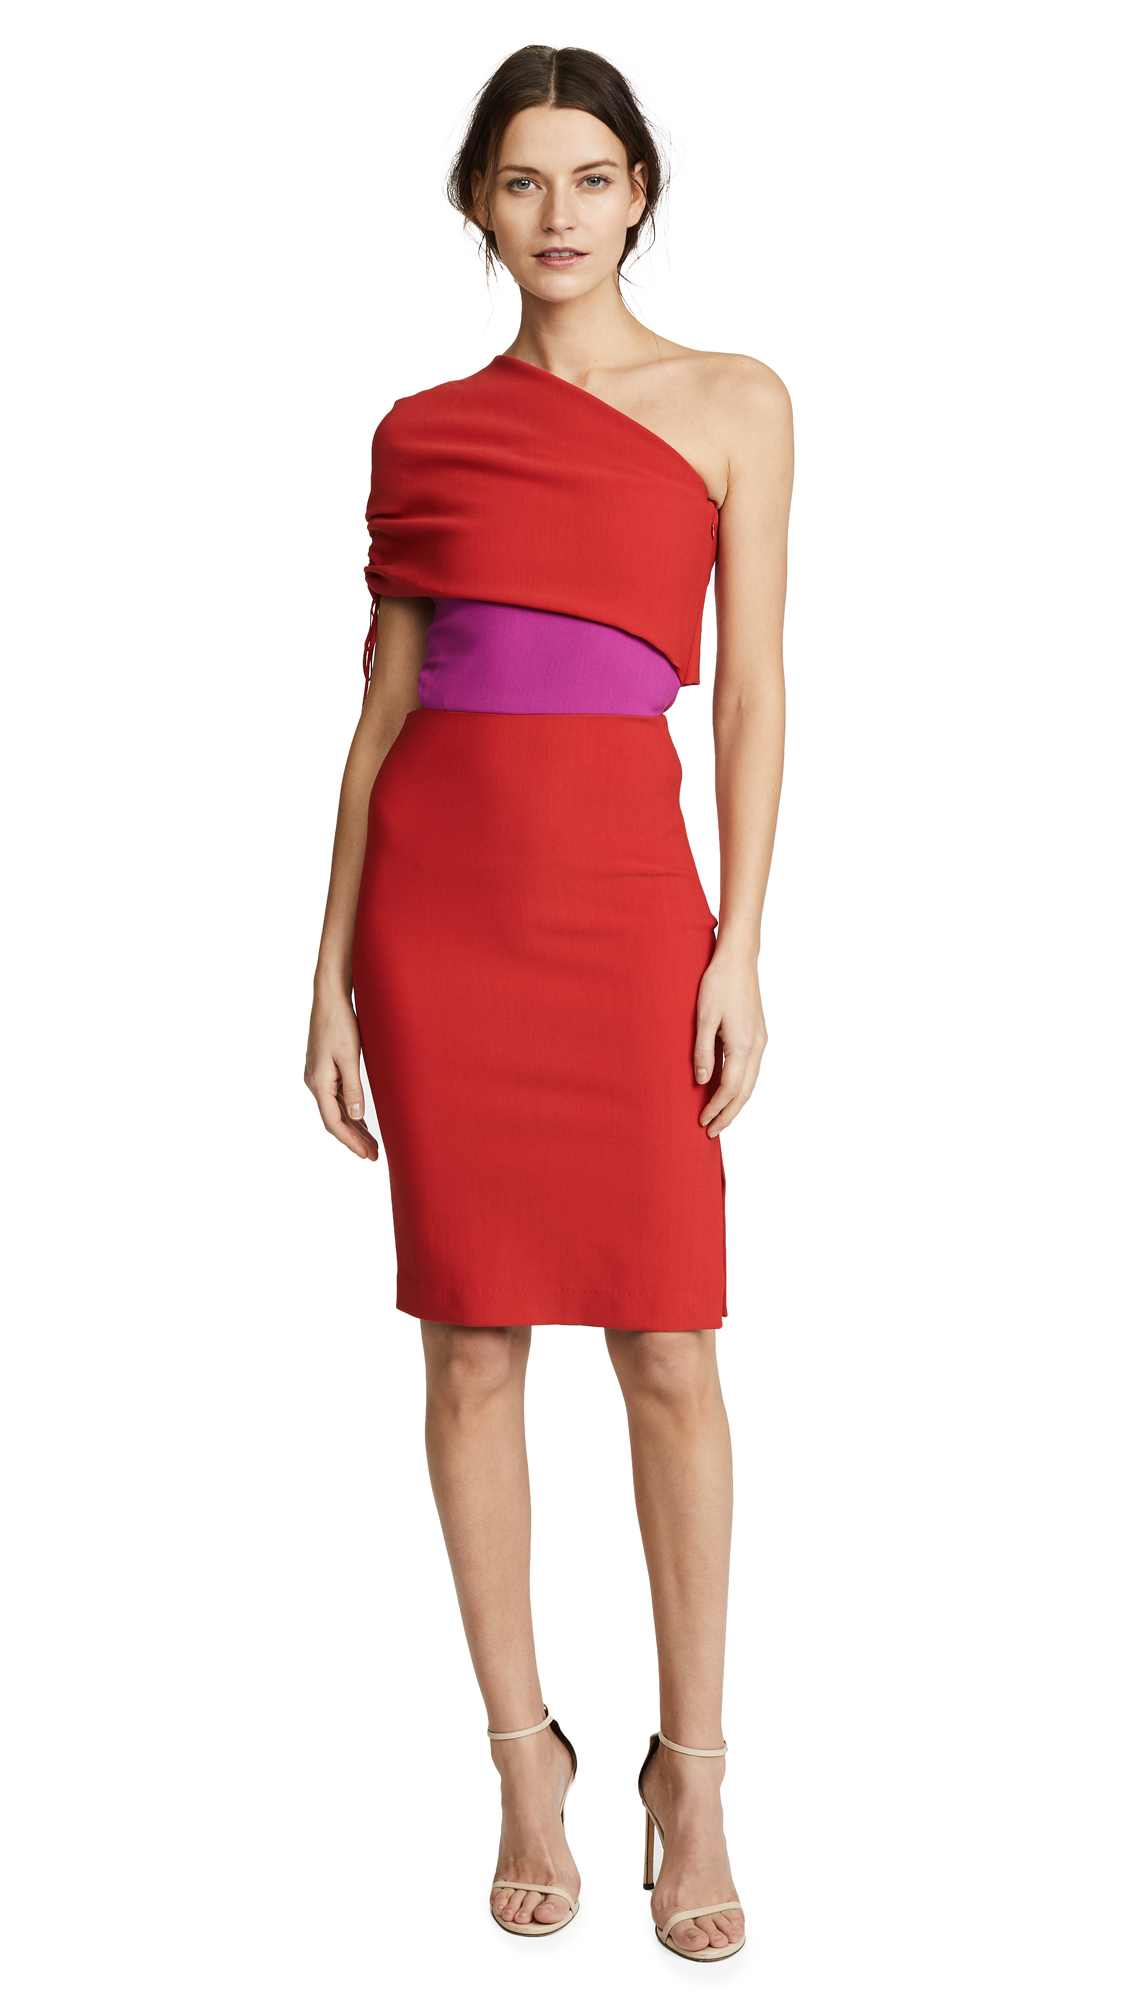 HANEY Briana One Shoulder Dress with Ruched Sleeve